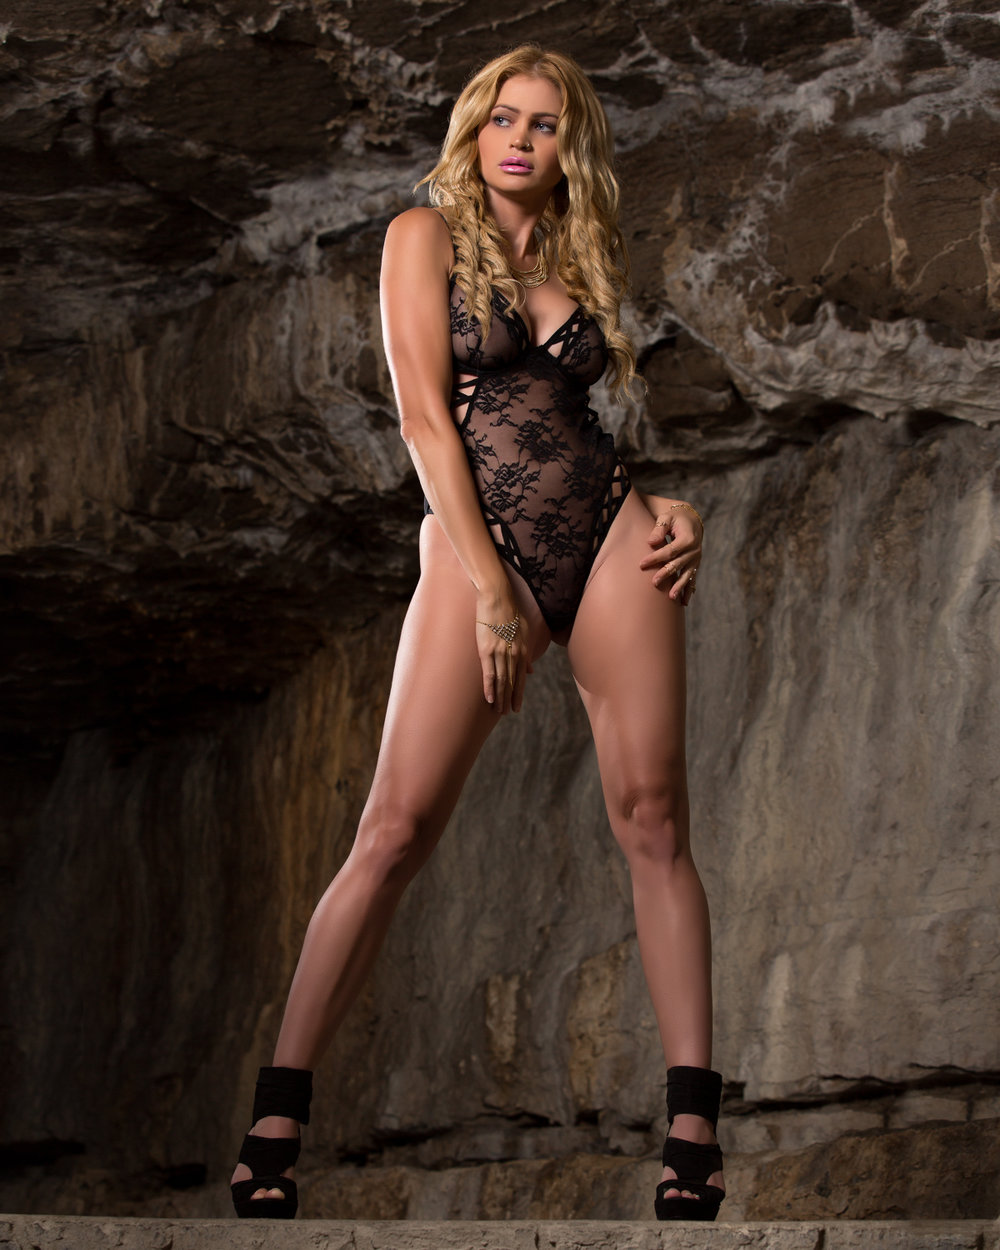 pedro-bonatto-stacee-may-cave-lingerie.jpg